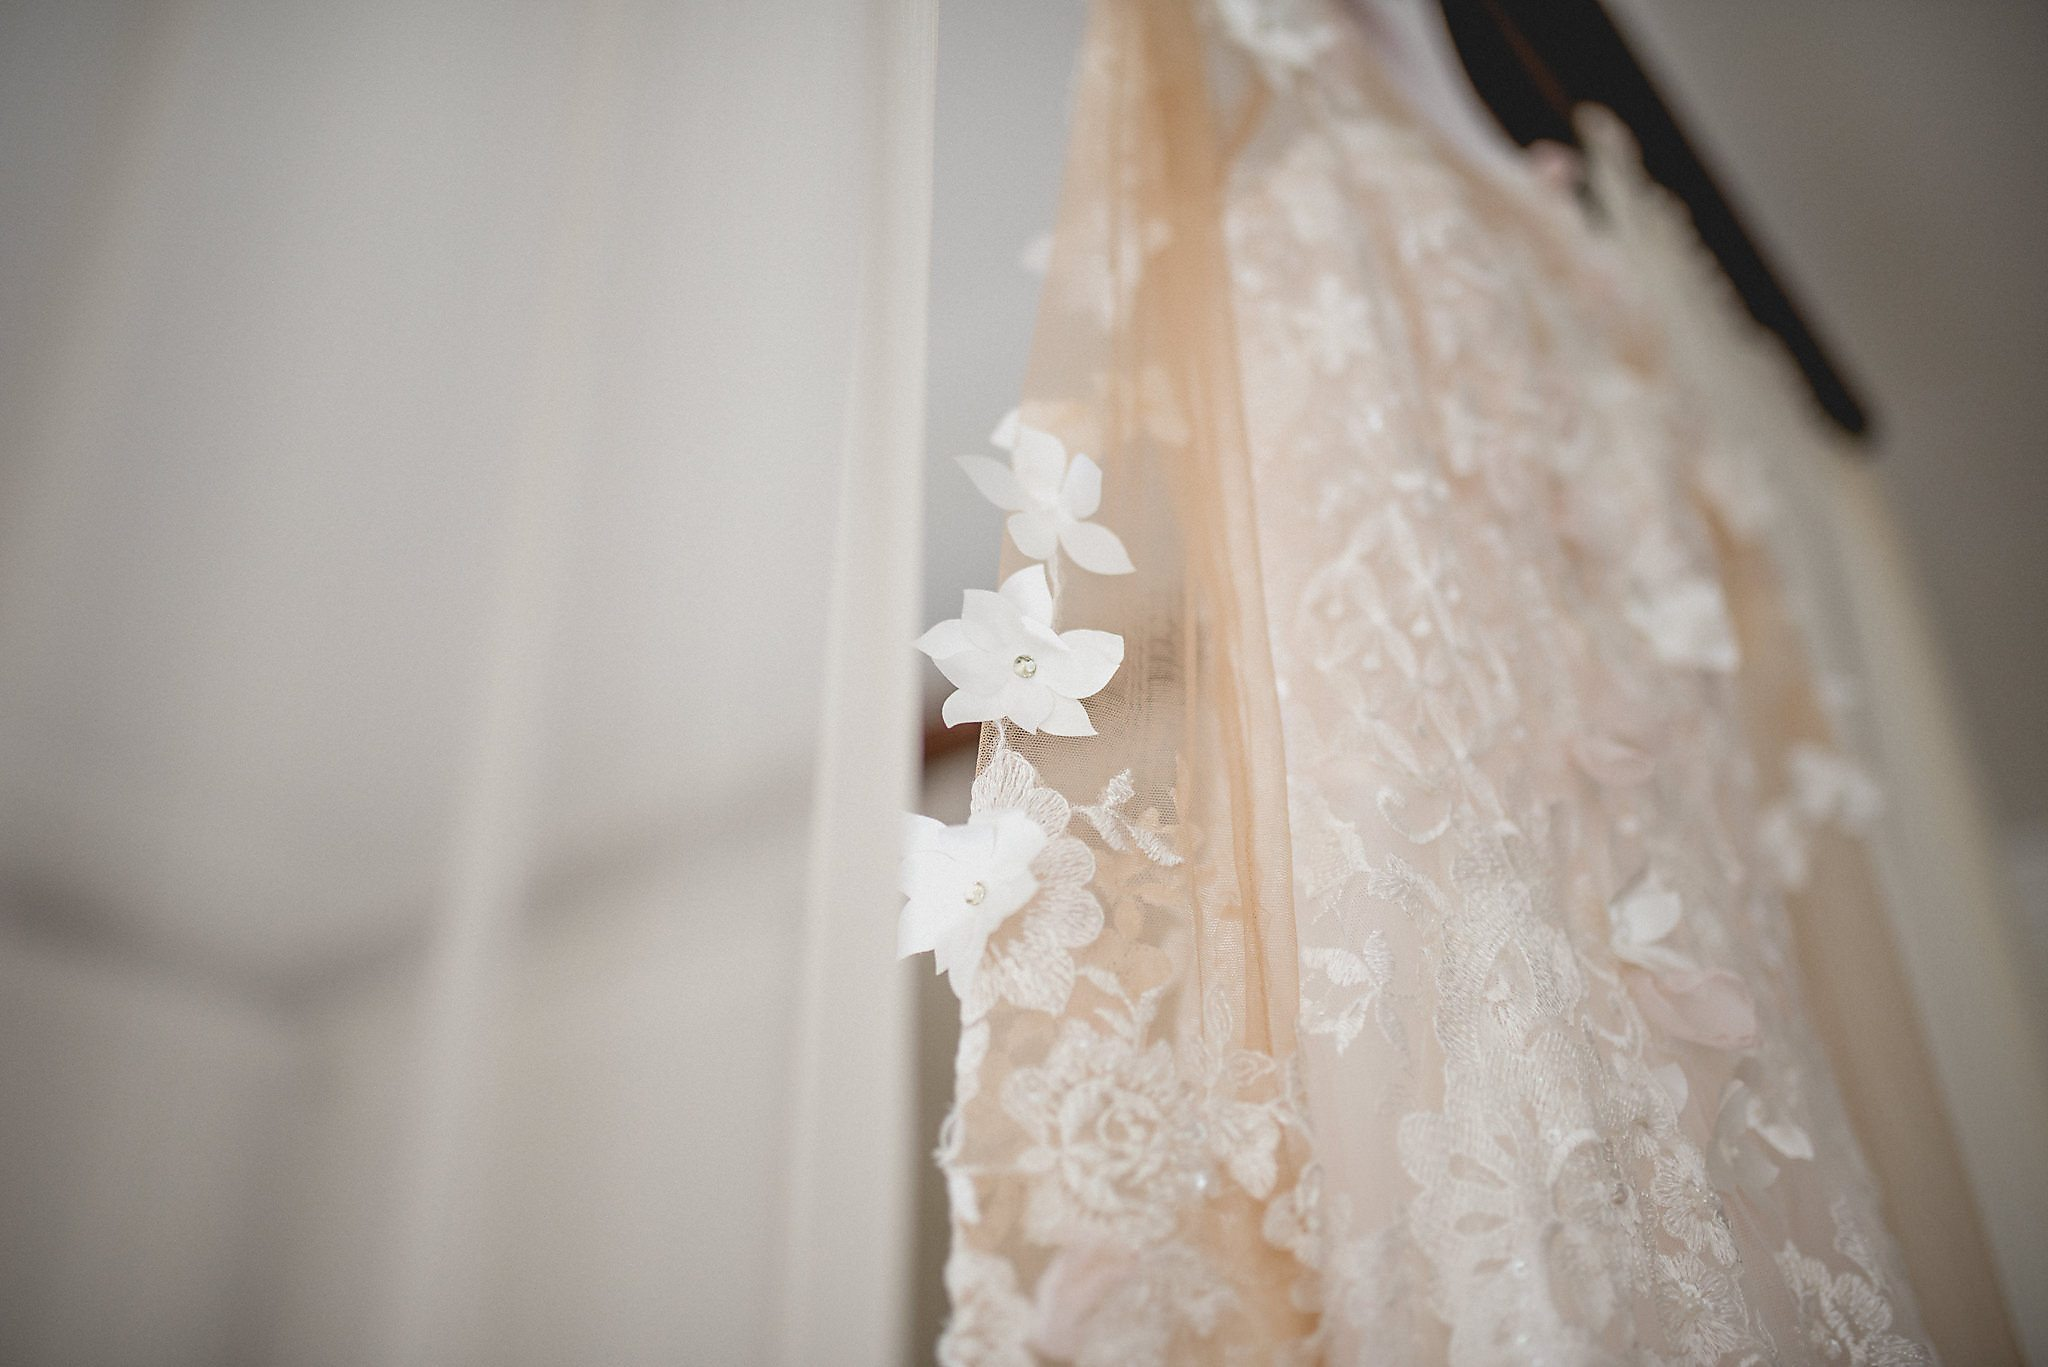 Delicate flower detail on the sleeves of bridal gown